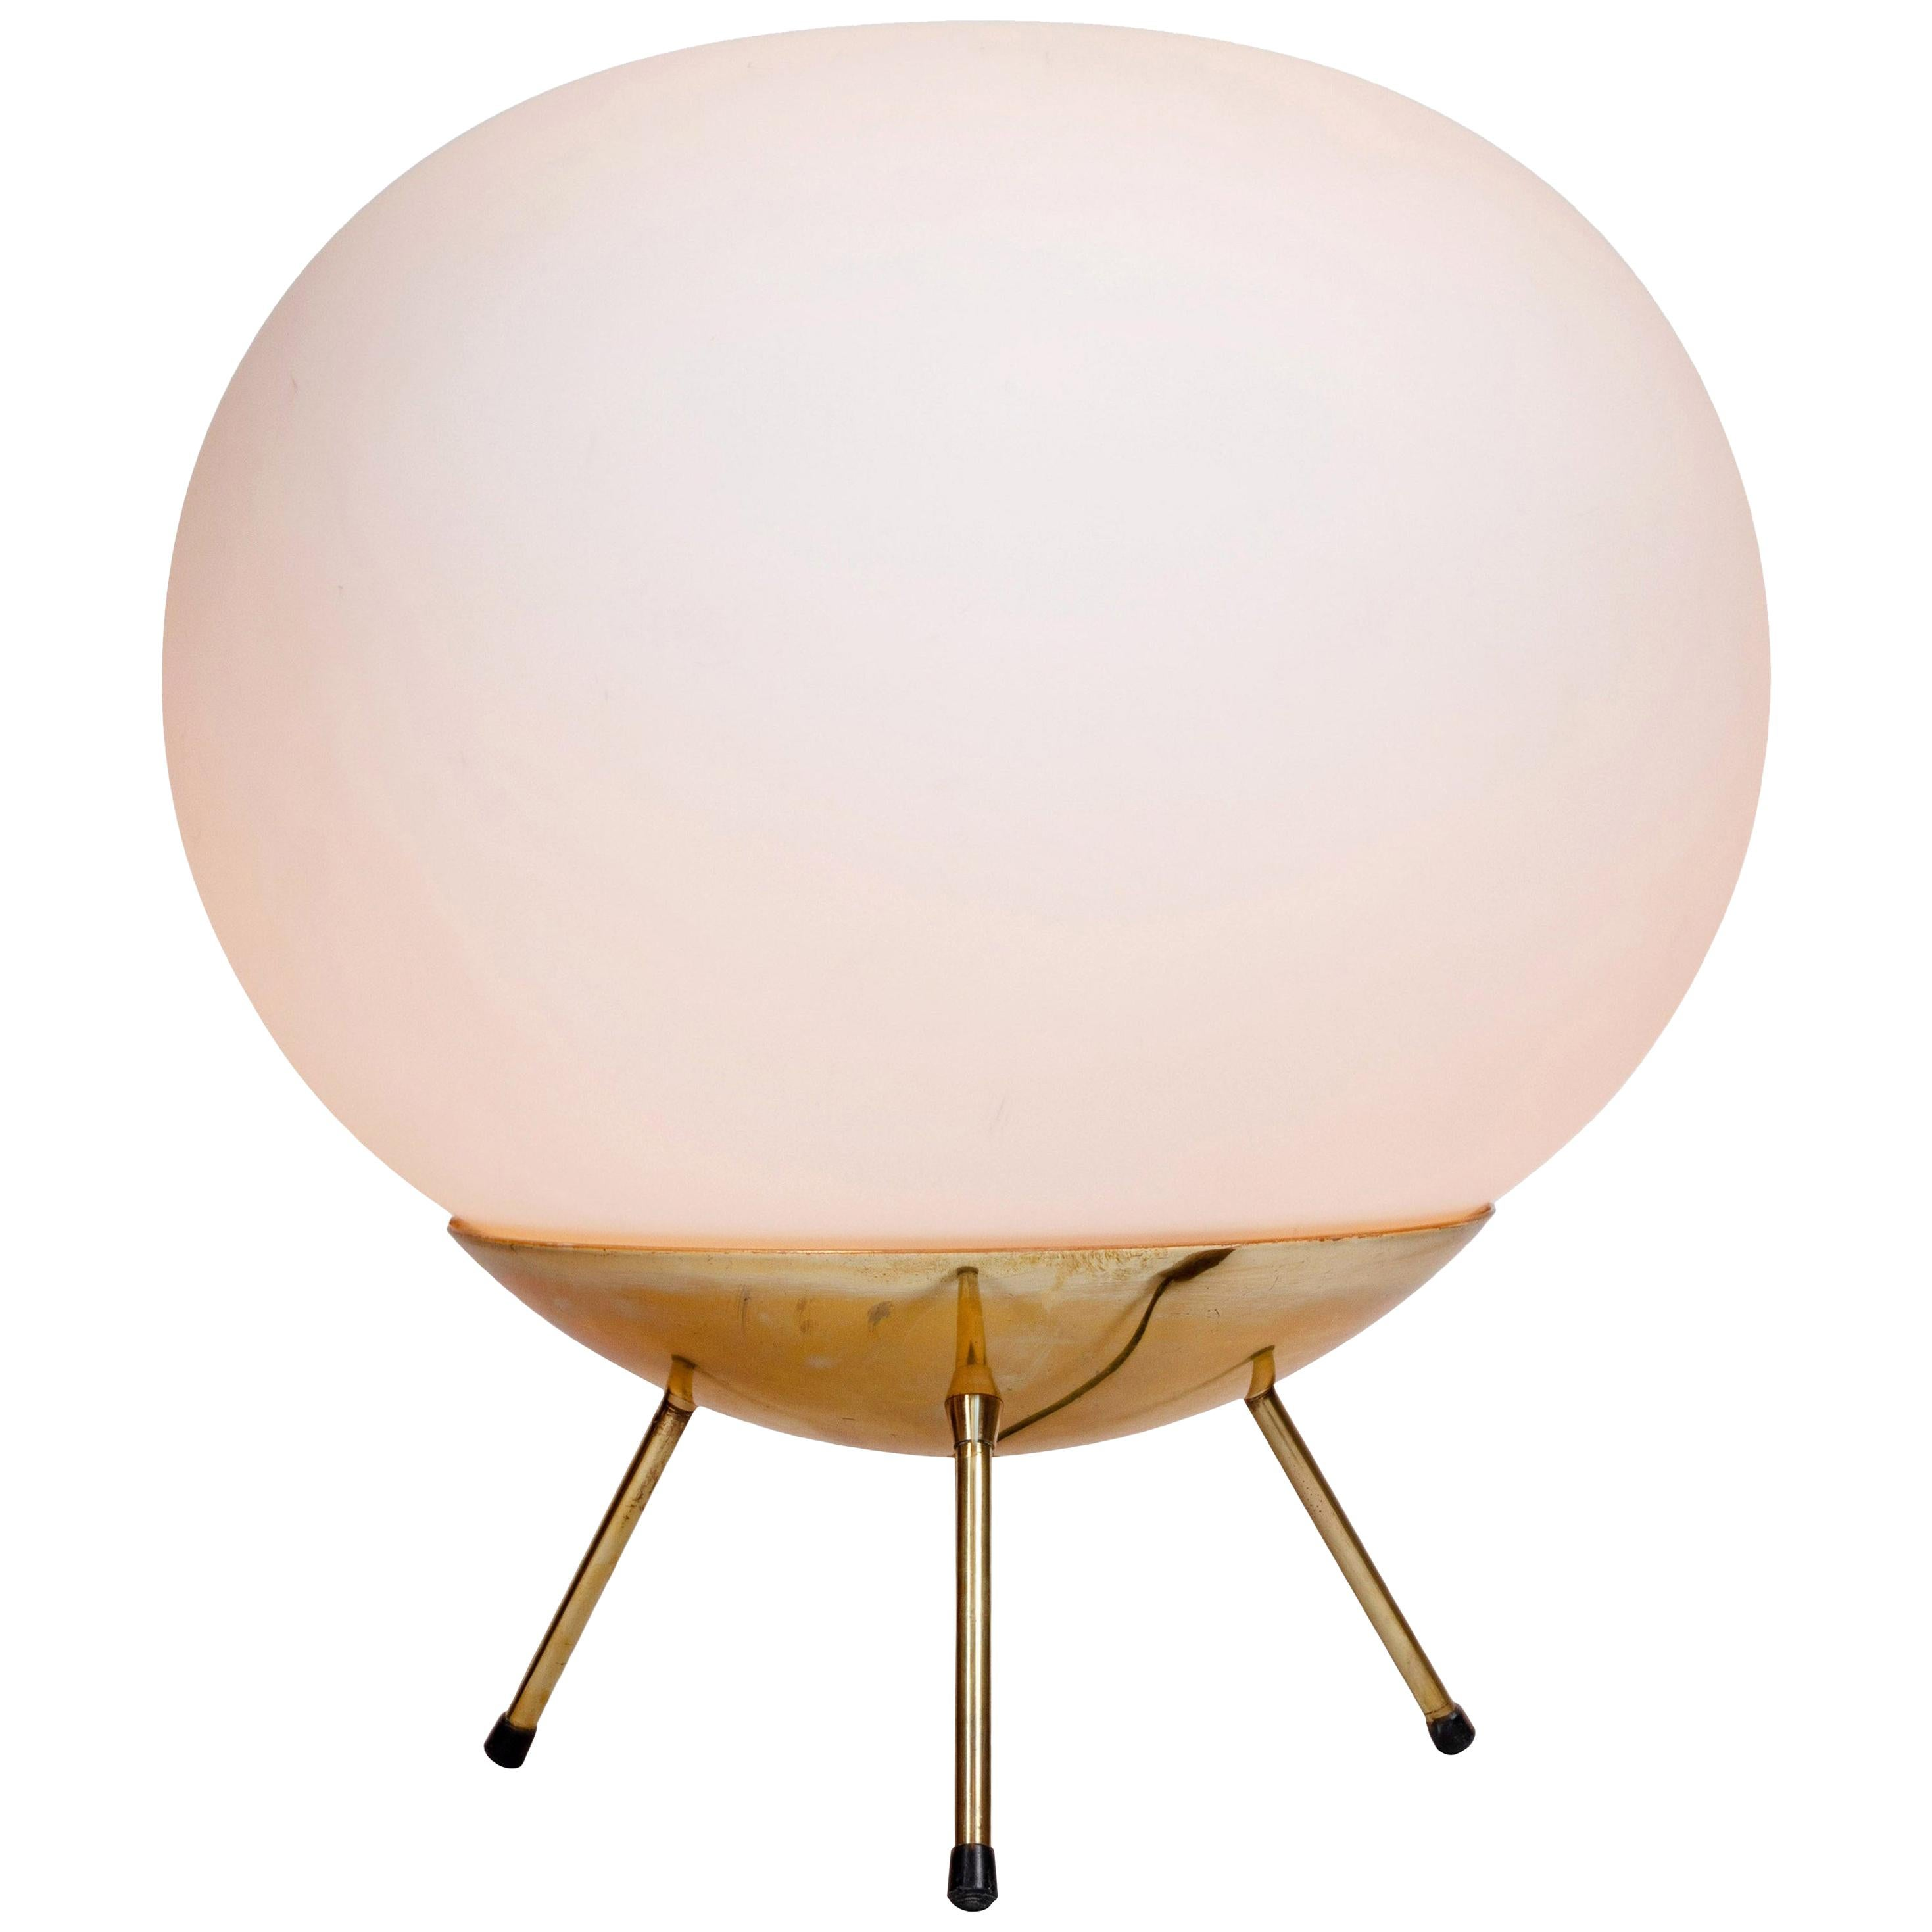 Large 1960s Glass and Brass Tripod Floor or Table Lamp Attributed to Stilnovo